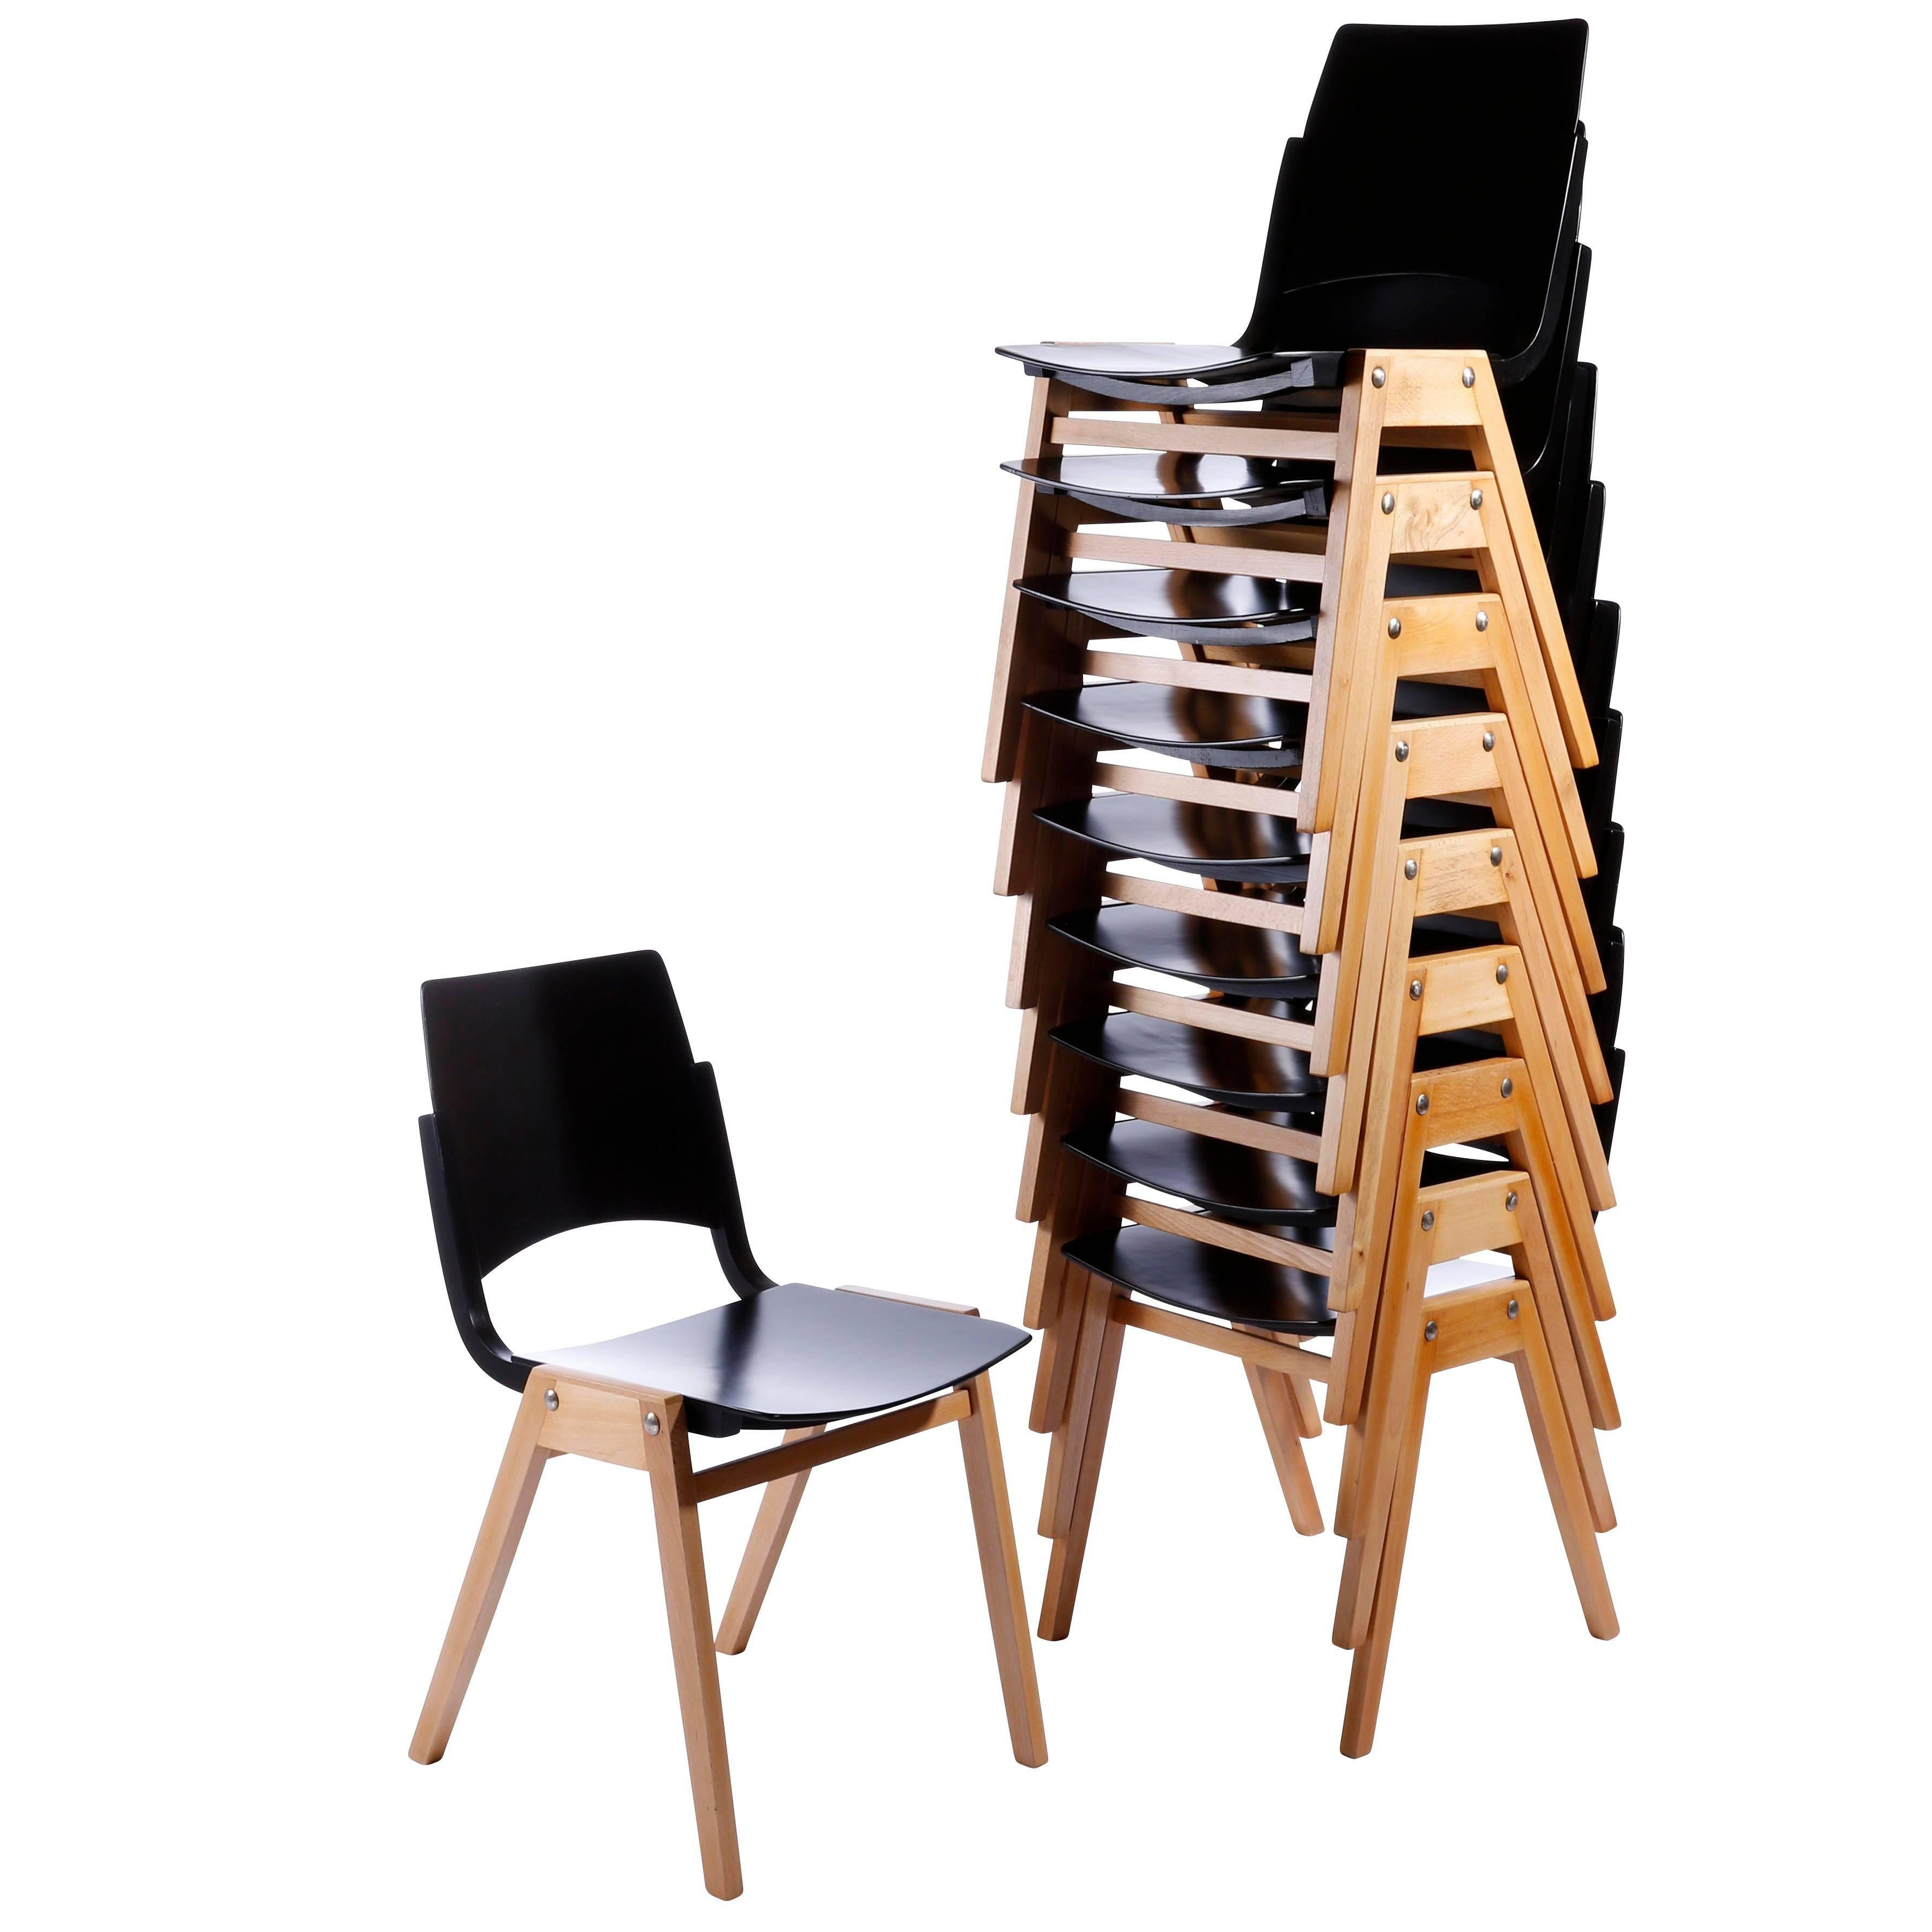 flexes to shell knoll users accommodate polypropylene stacking different shop sitting with gigi chairs the chair styles